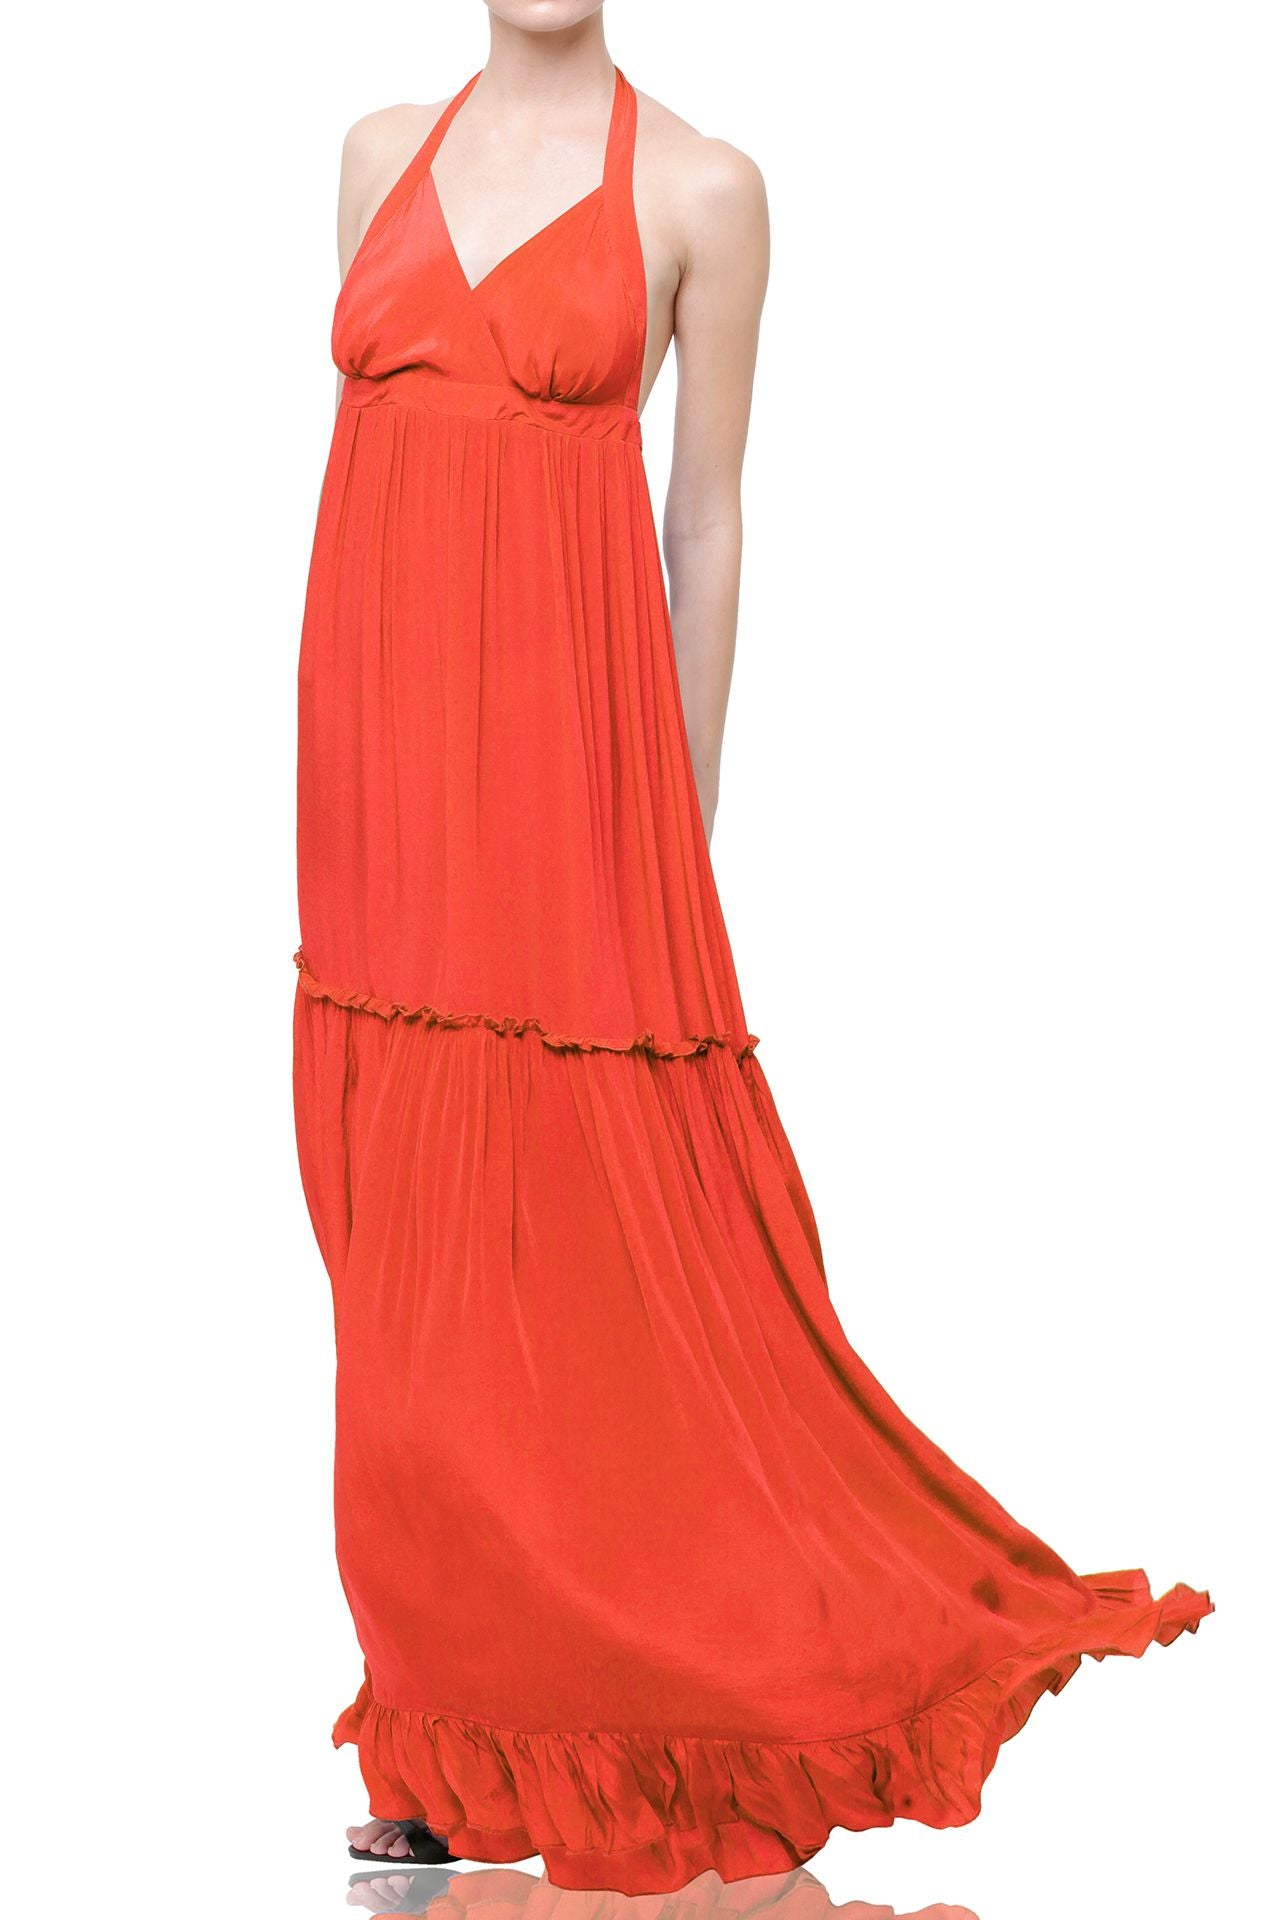 Backless Halter Long Dress In Oxi Fire